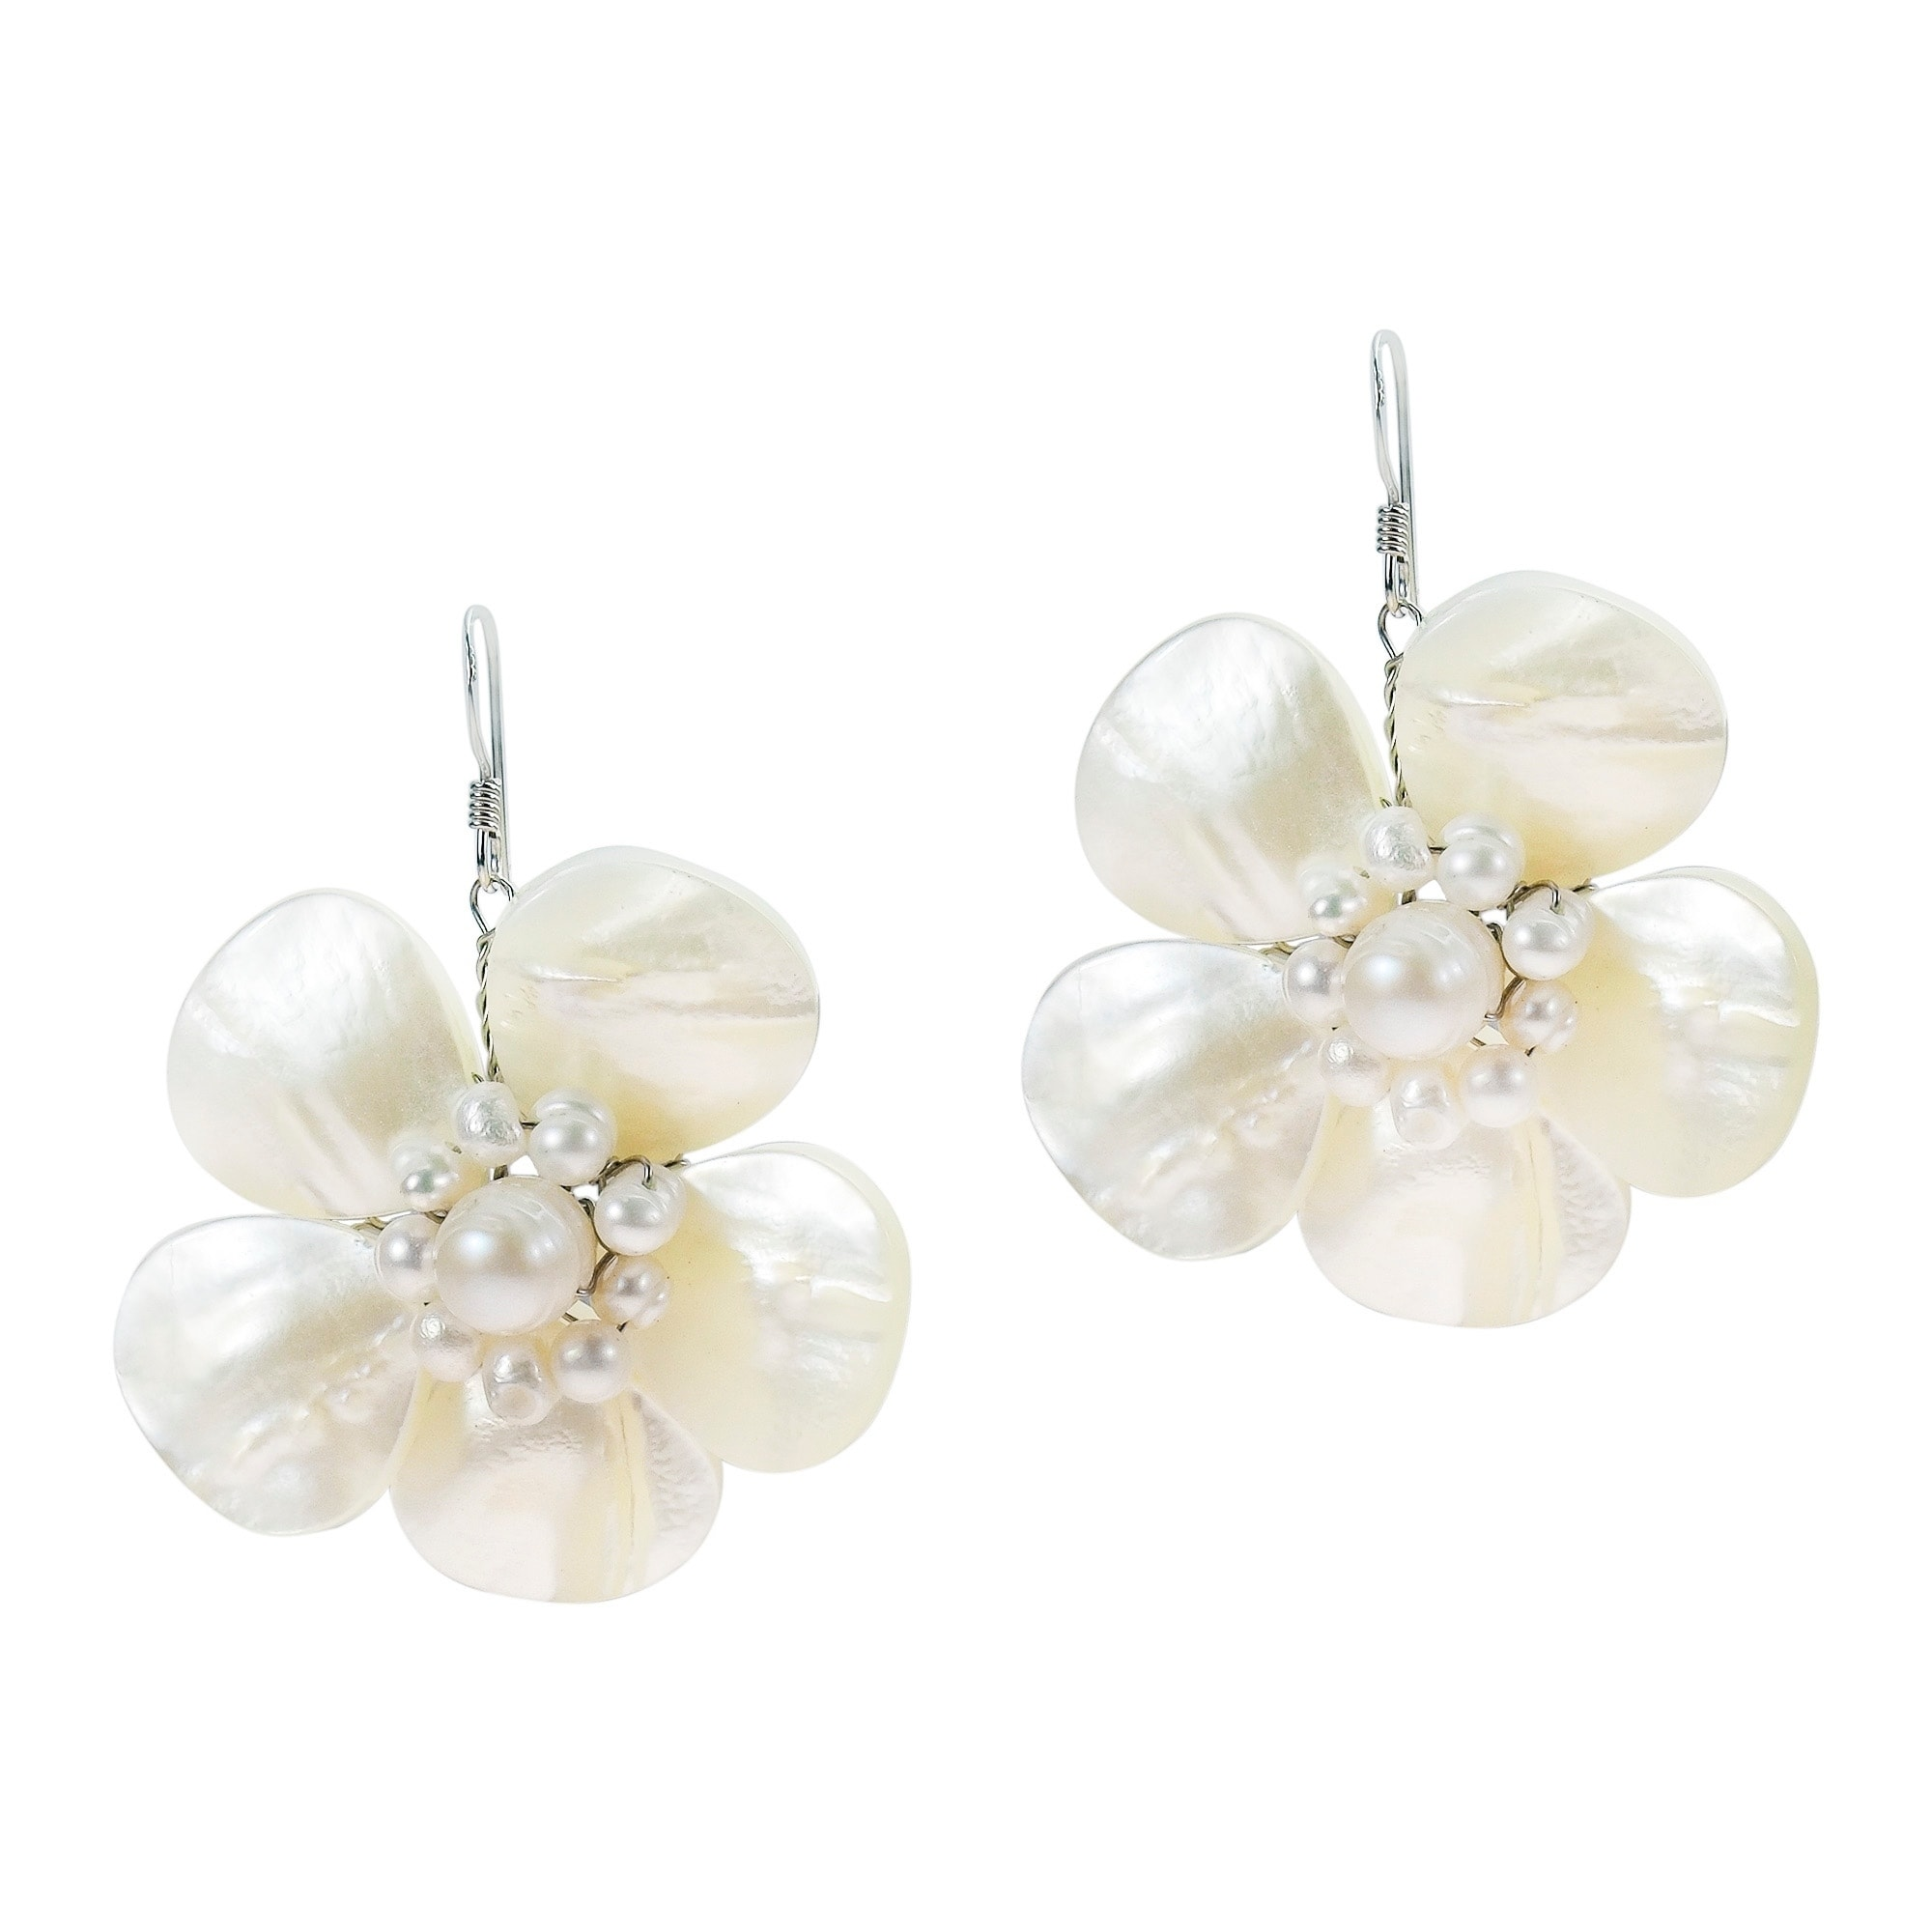 Handmade Sterling Silver Mother Of Pearl Flower And Earrings Thailand On Free Shipping Orders Over 45 5099212